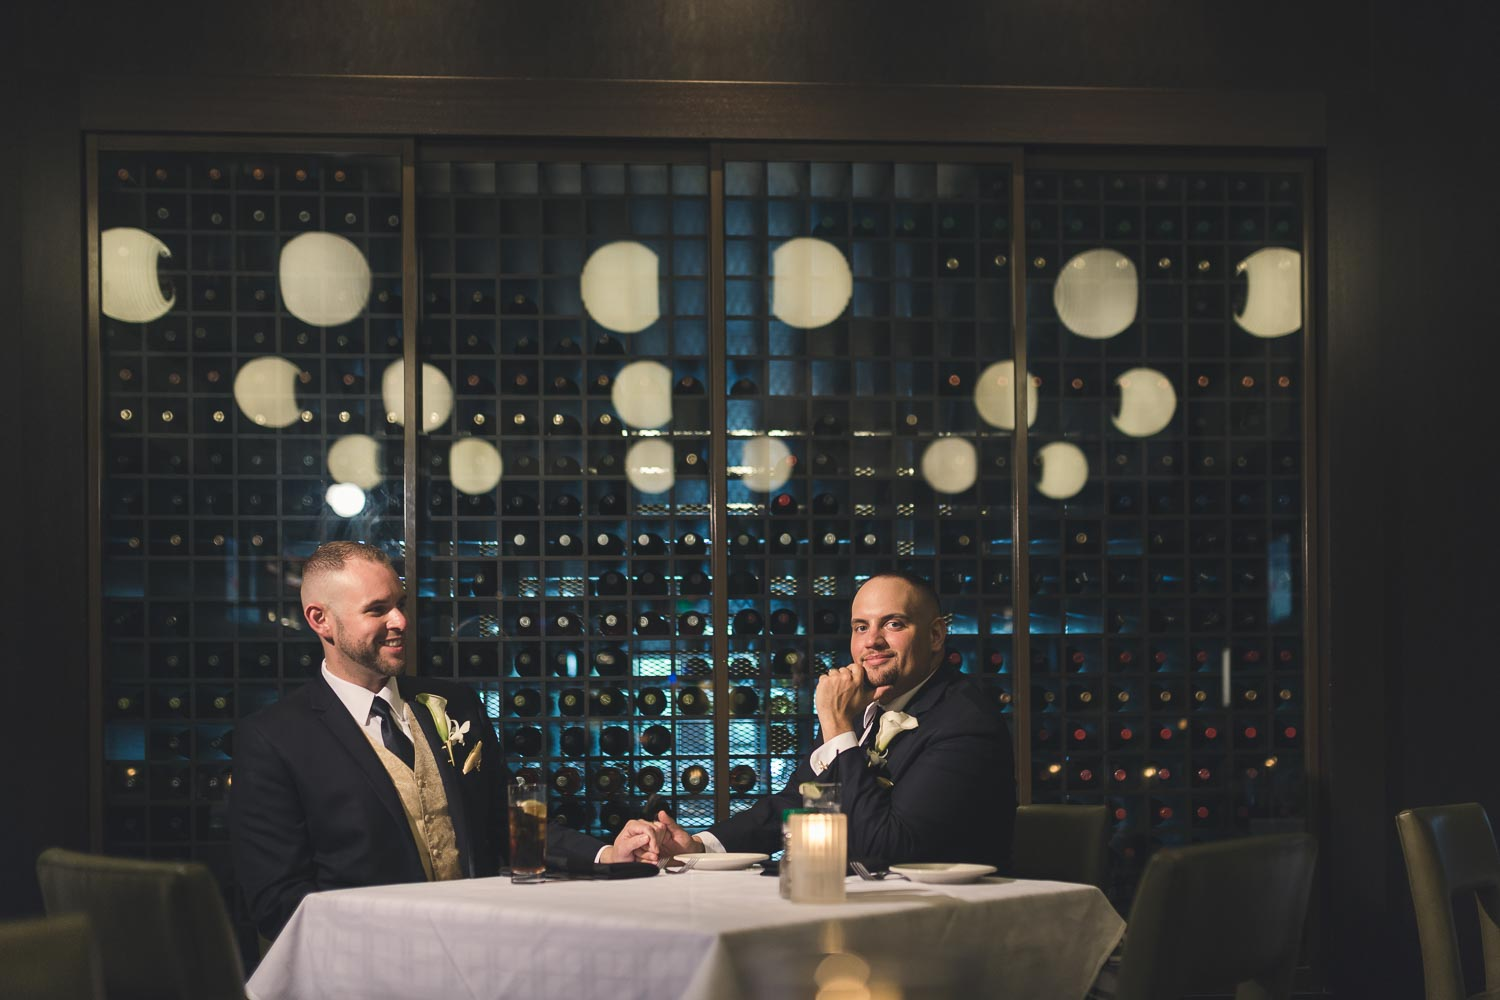 Grooms at dinner table together